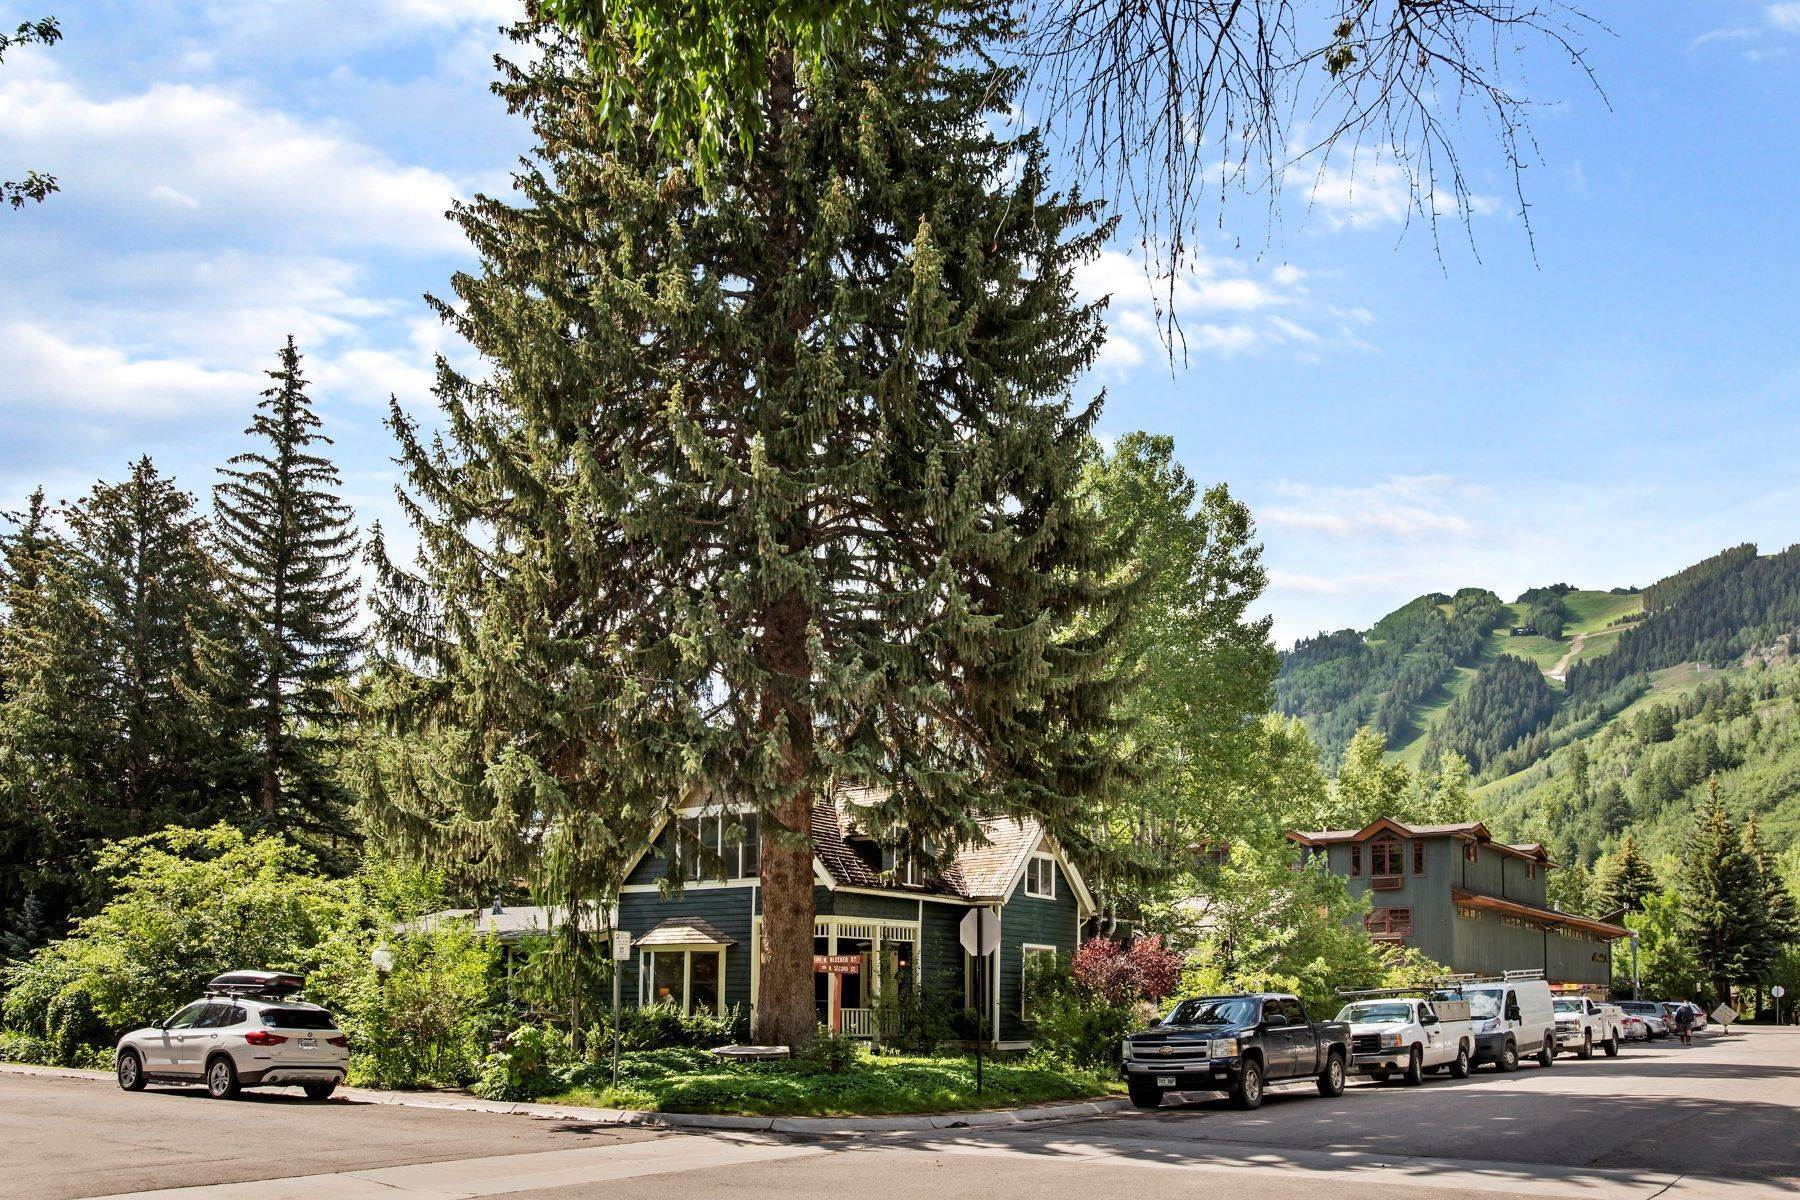 Single Family Homes für Verkauf beim Coveted West End Location 233 W Bleeker Street, West End, Aspen, Colorado, 81611 Vereinigte Staaten